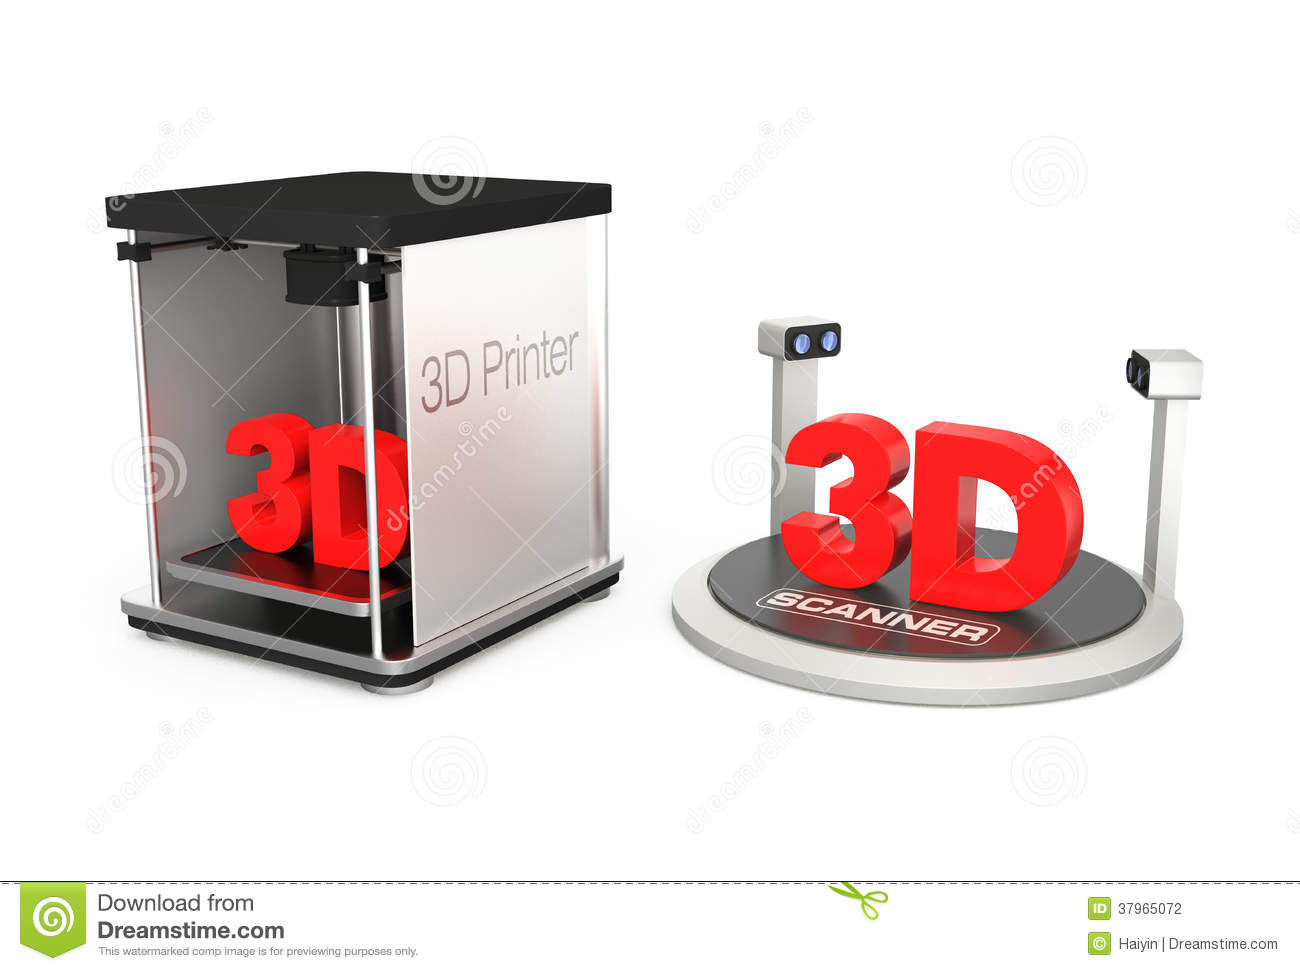 imprimante 3d et scanner 3d illustration stock. Black Bedroom Furniture Sets. Home Design Ideas